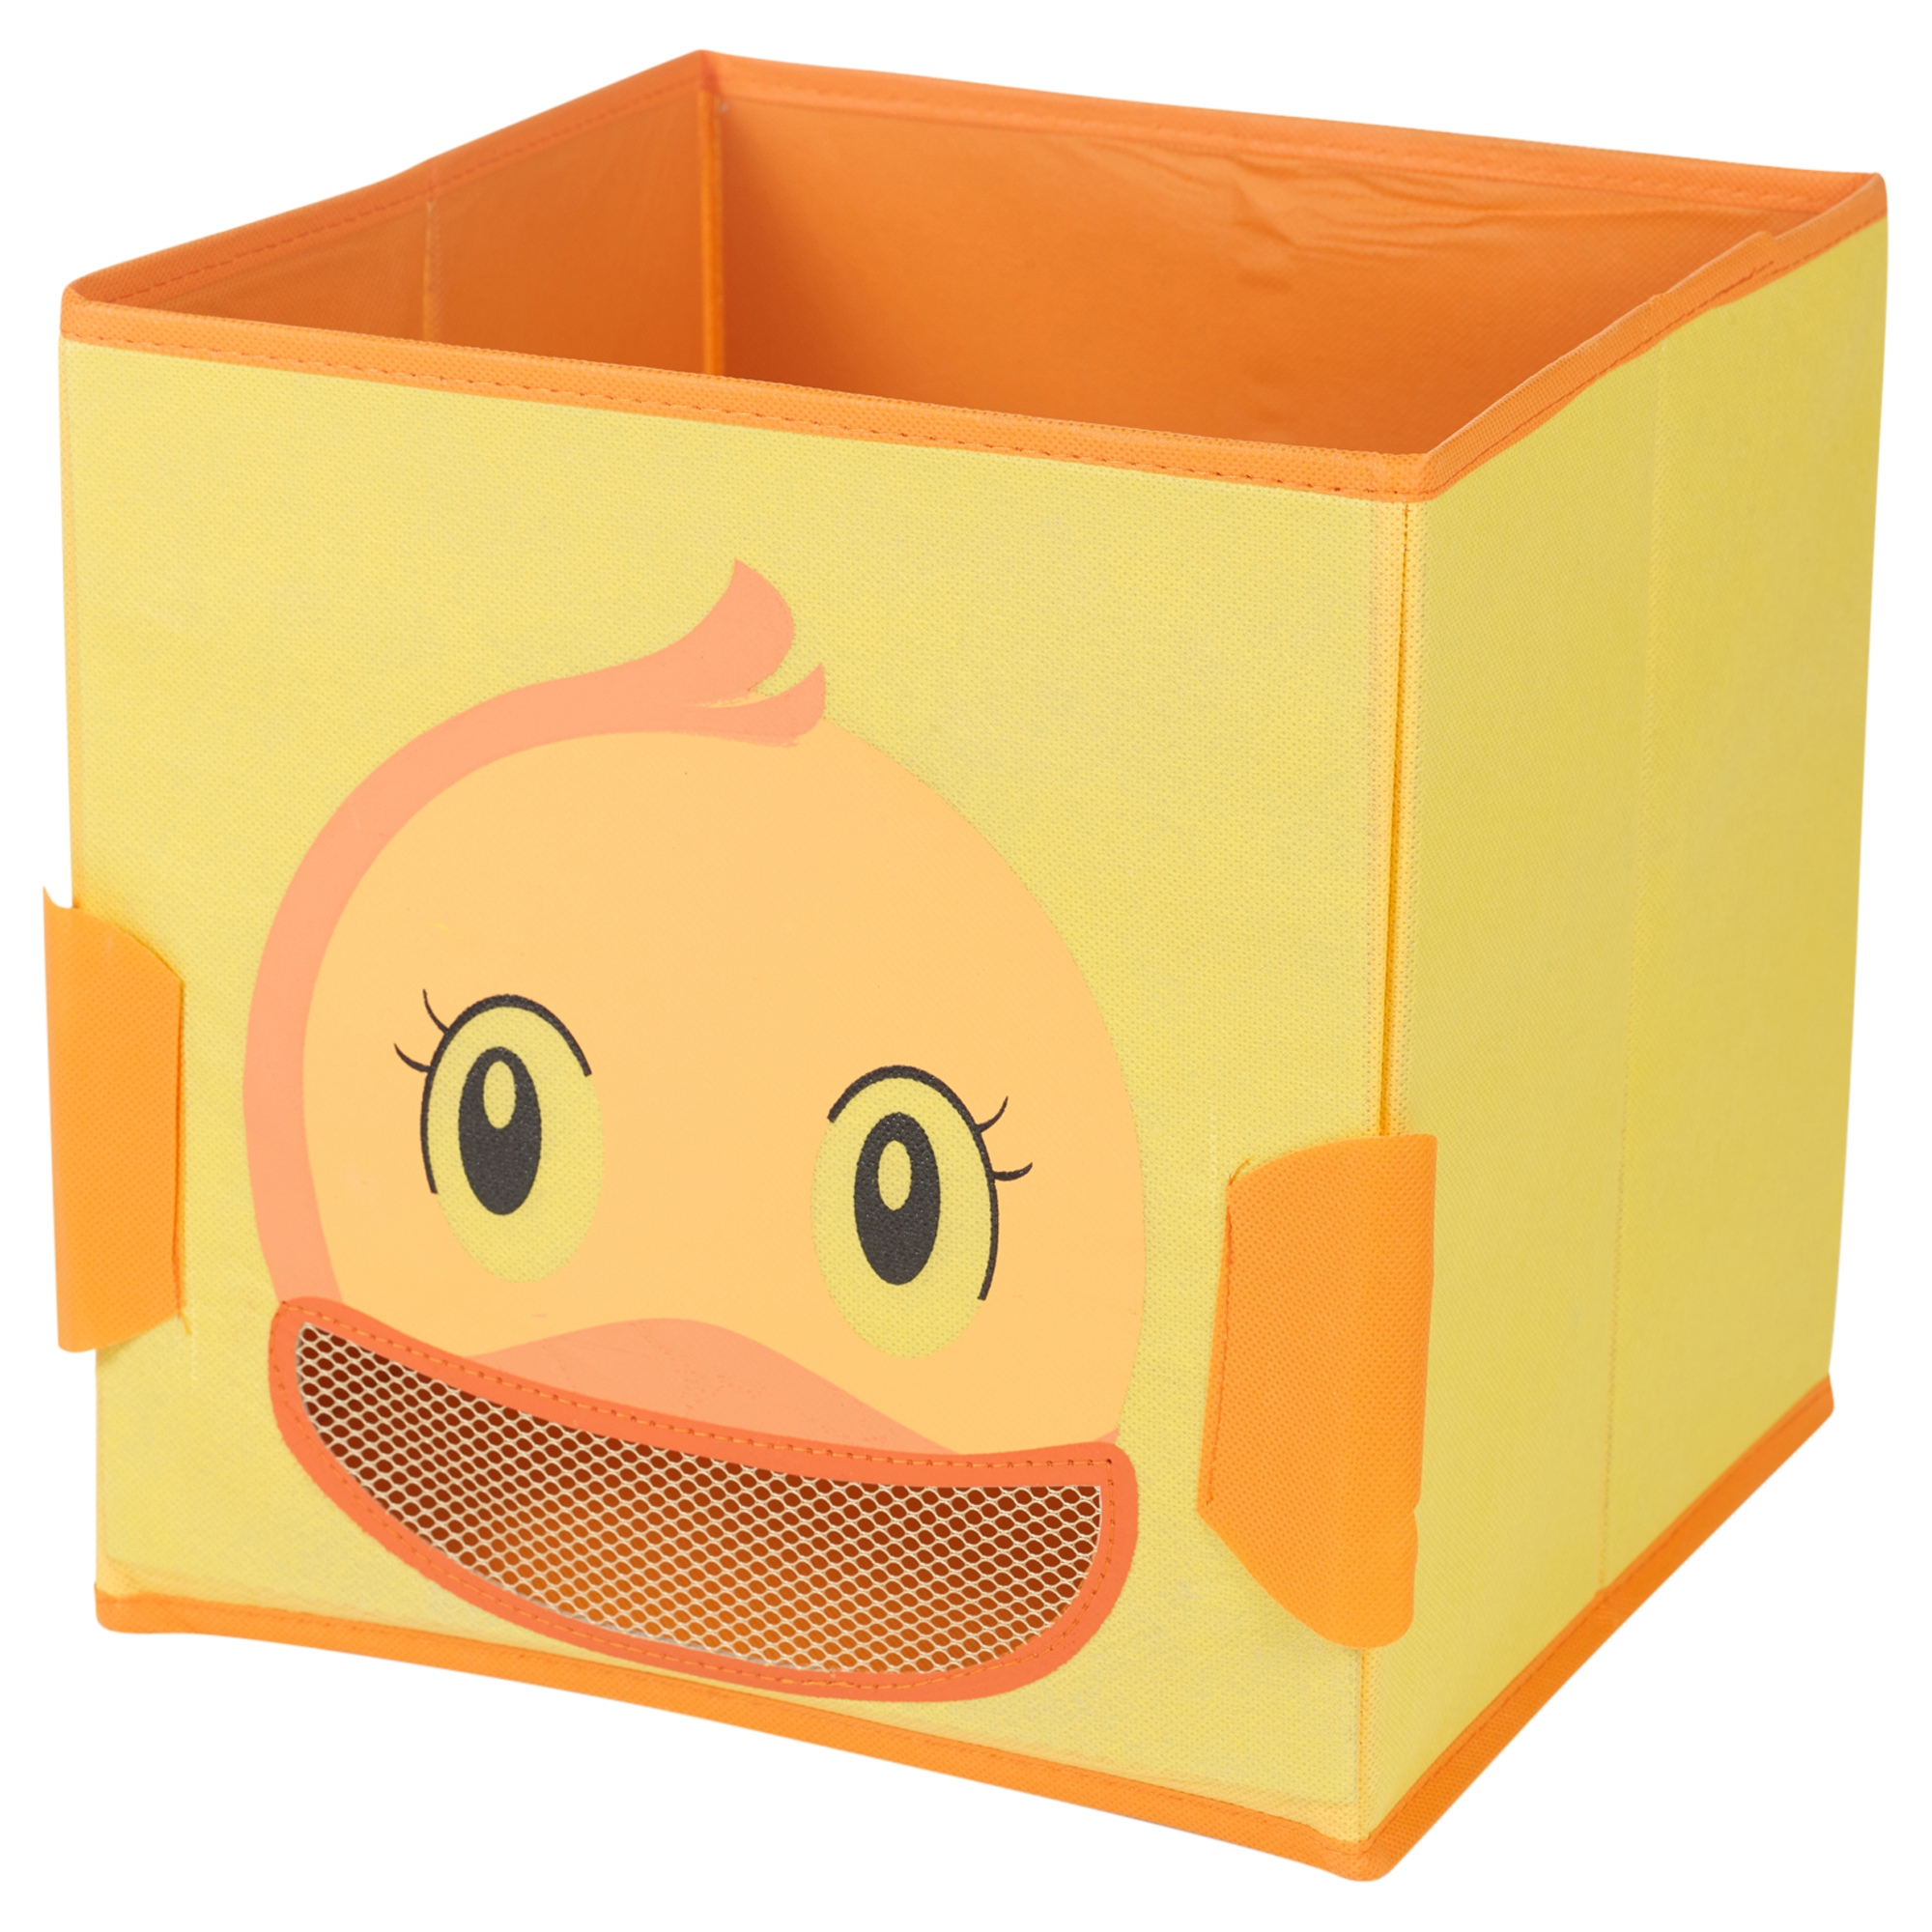 Toy Bin Organizer Kids Childrens Storage Box Playroom: Kids Toy Animal Storage Box Non Woven Fabric Collapsible